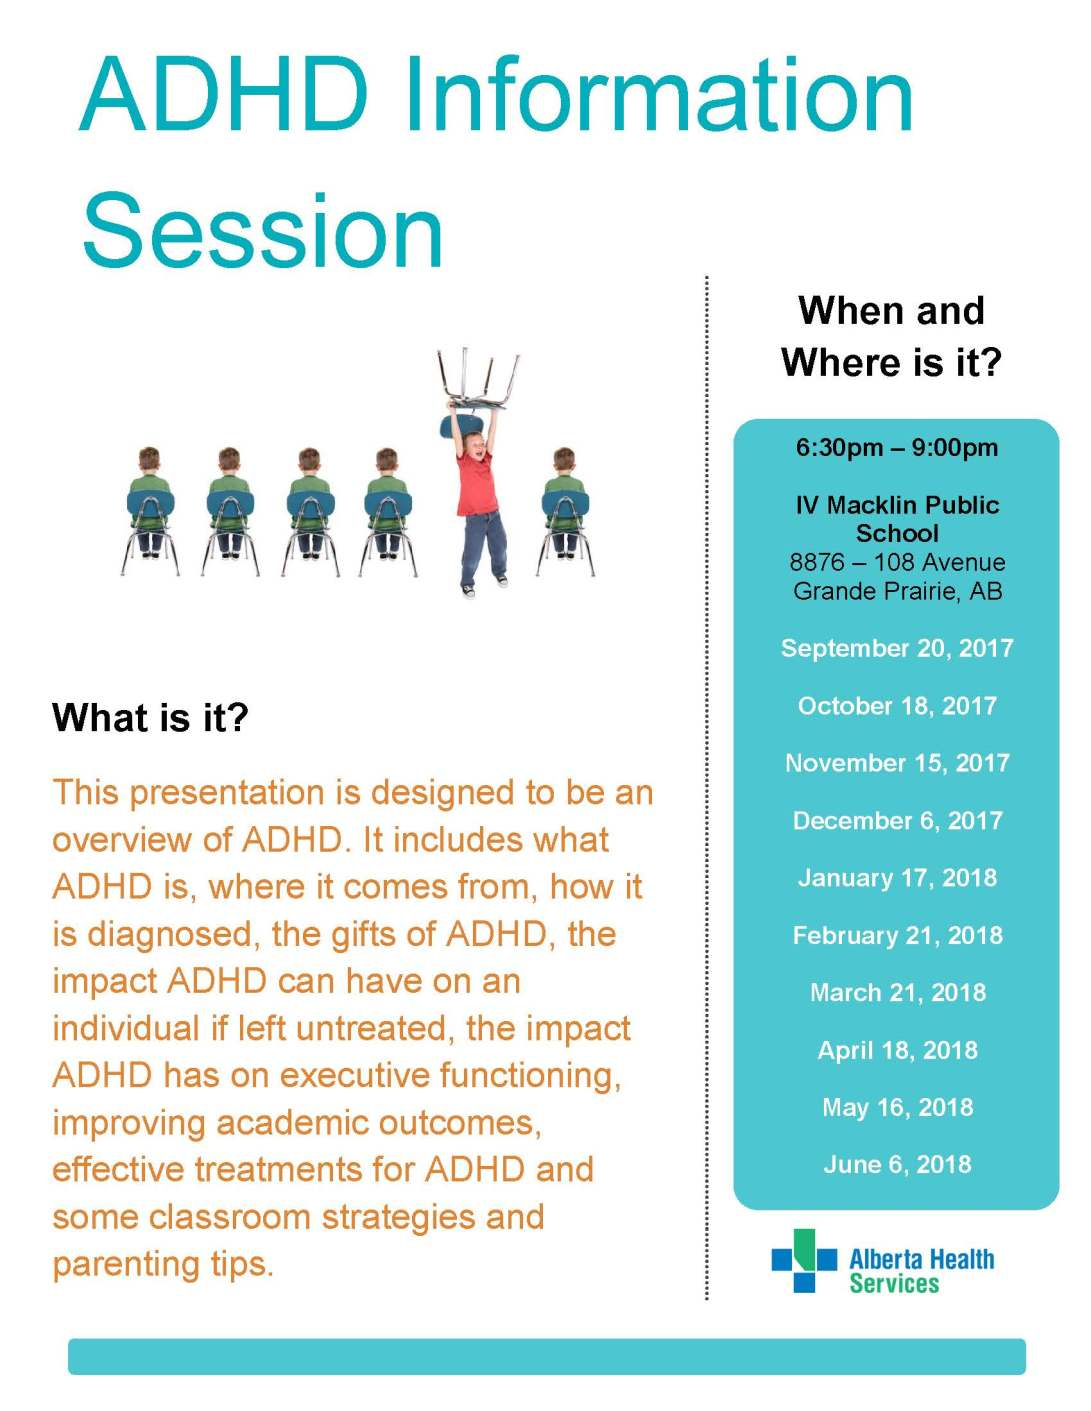 ADHD Information Session Poster